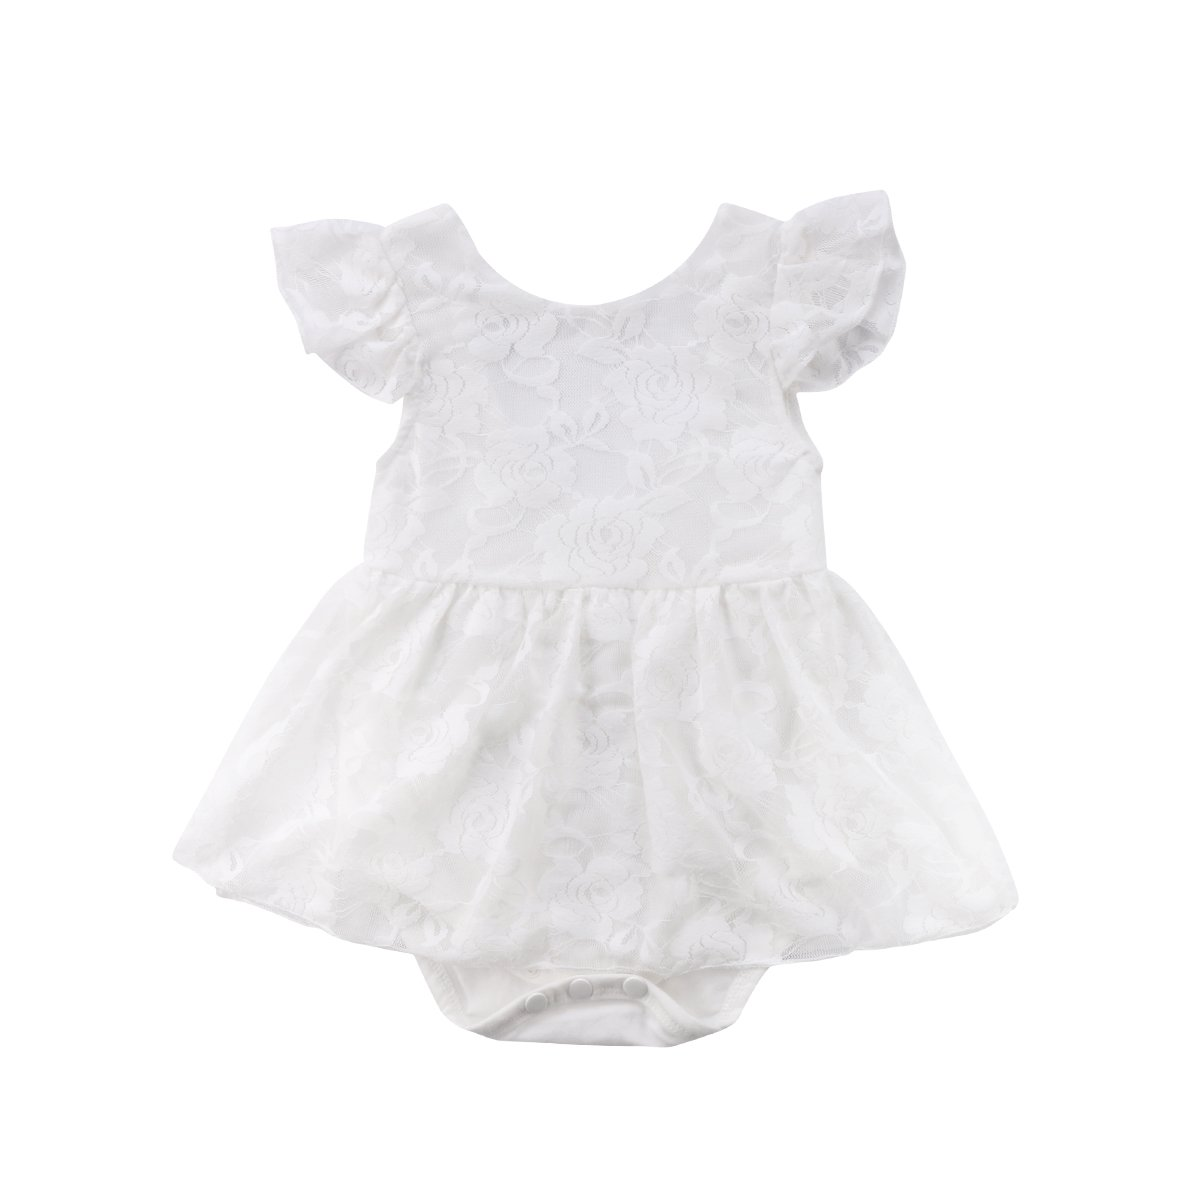 Imcute Newborn Baby Girls White Lace Princess Short Sleeve Romper Dresses for Summer